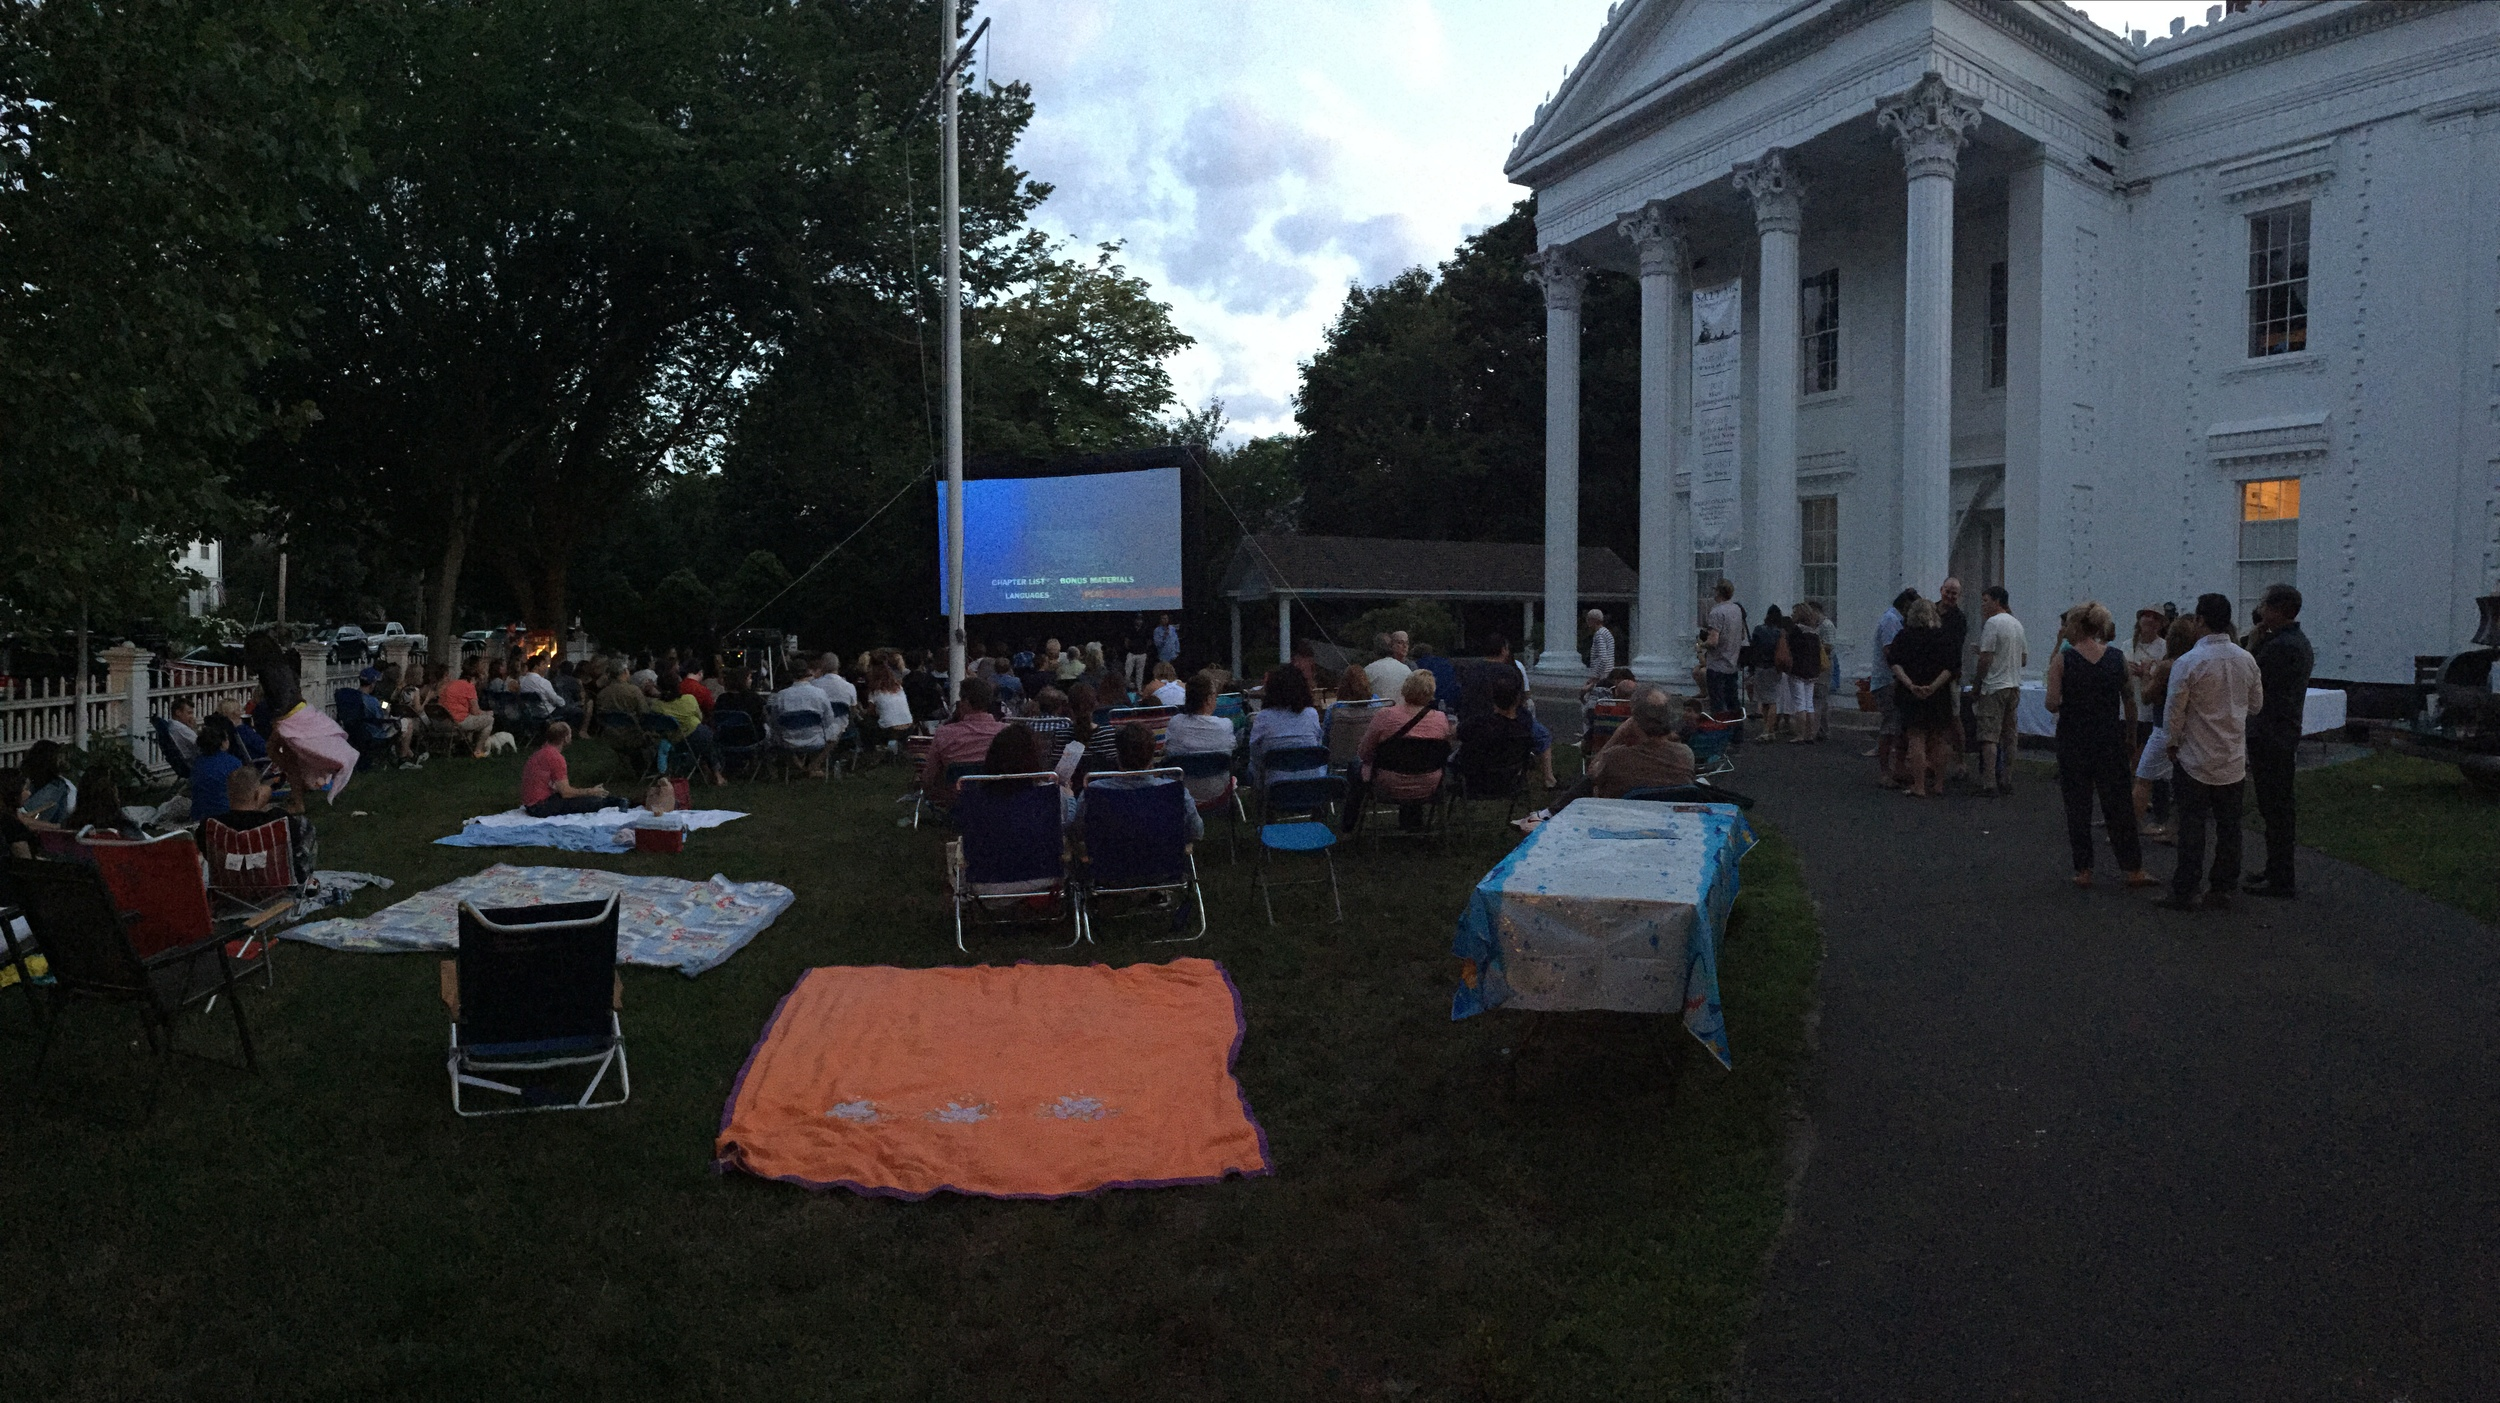 40th Anniversary Screening of JAWS on the front lawn!